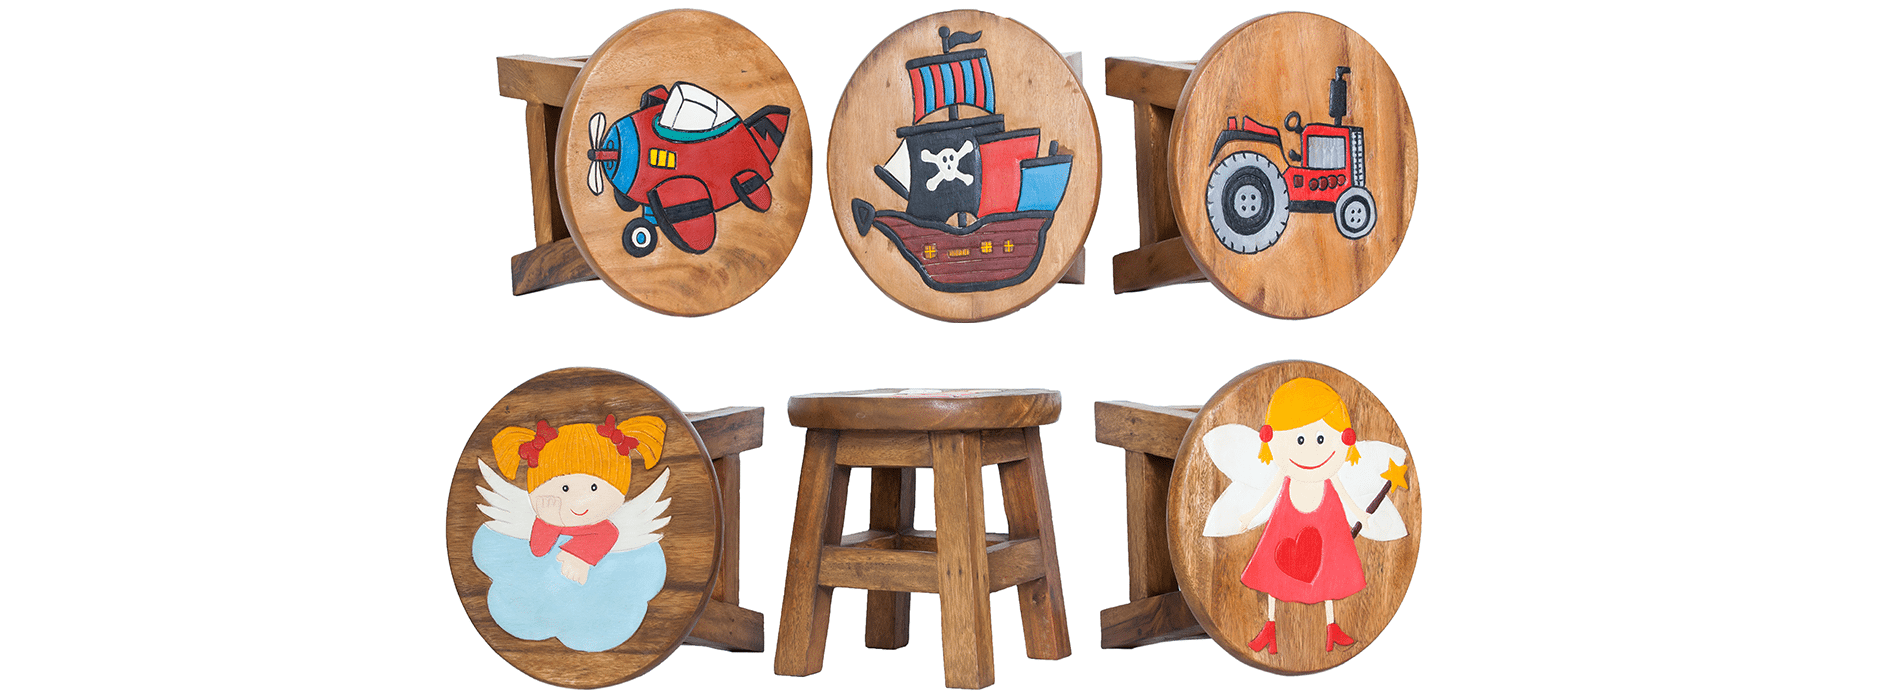 Wholesale Childrens Wooden Stools Order Direct From